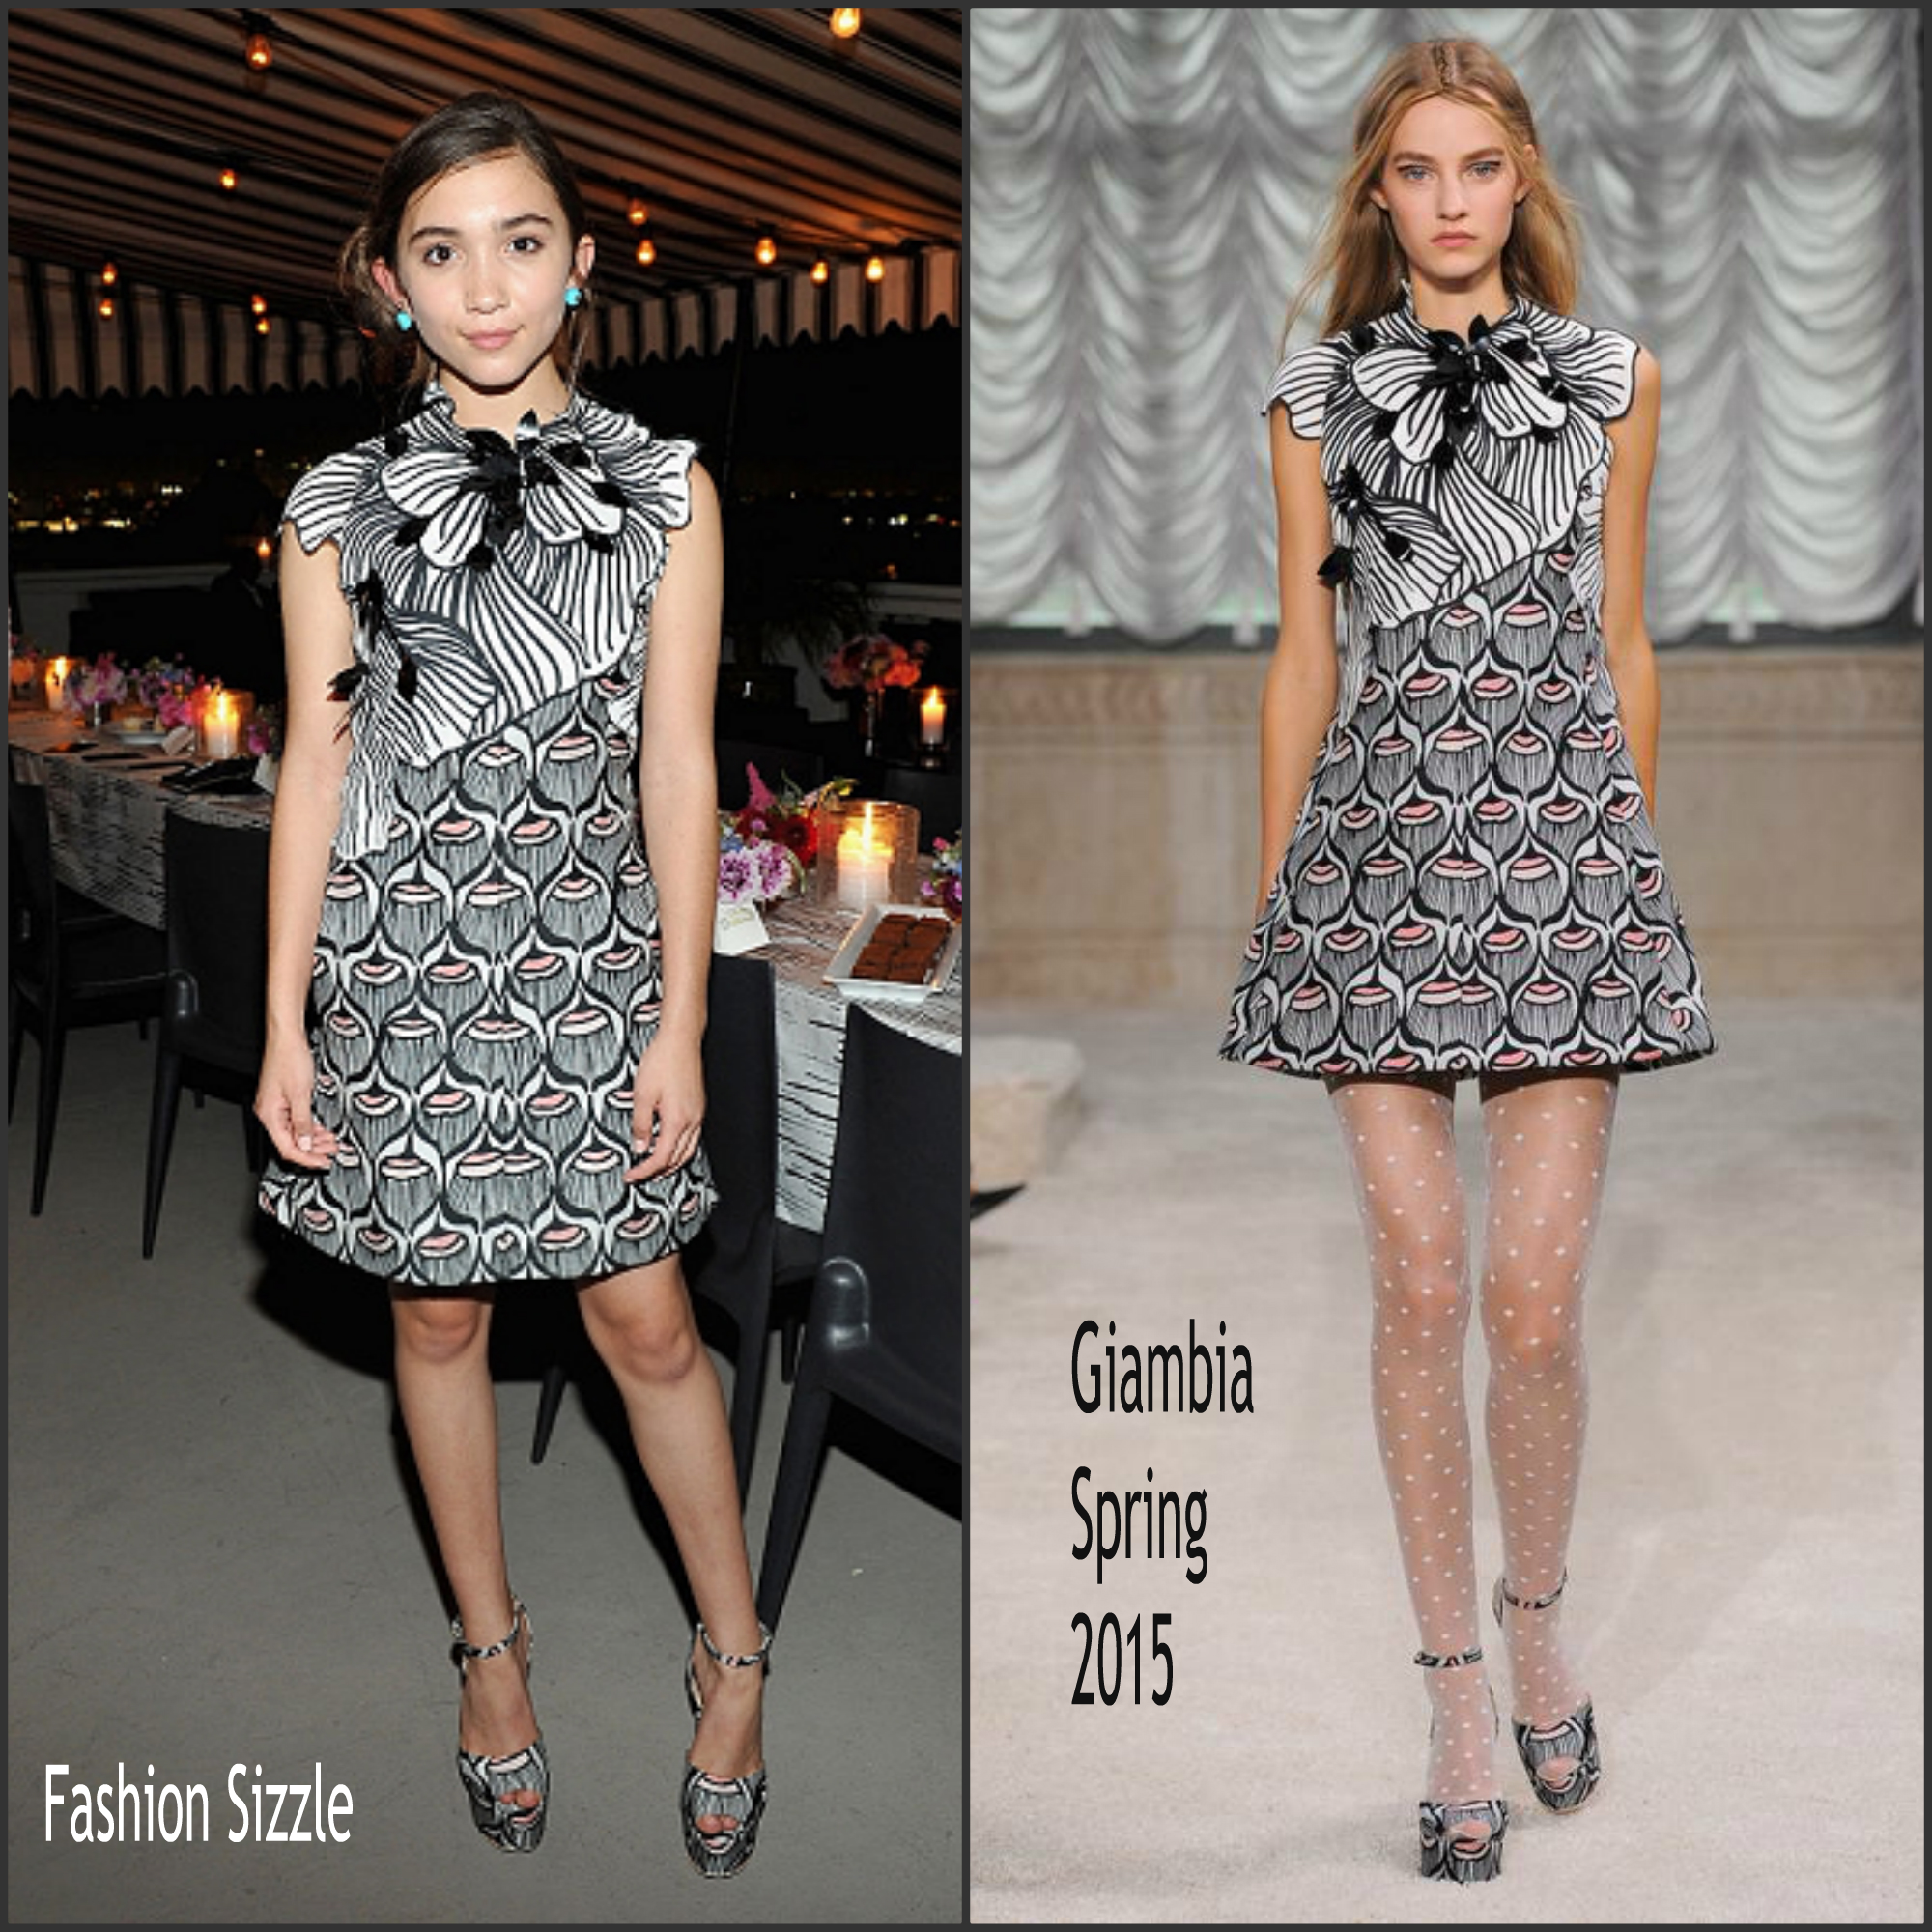 rowan-blanchard-in-giamba-teen-vogue-x-simon-back-to-school-saturdays-dinner